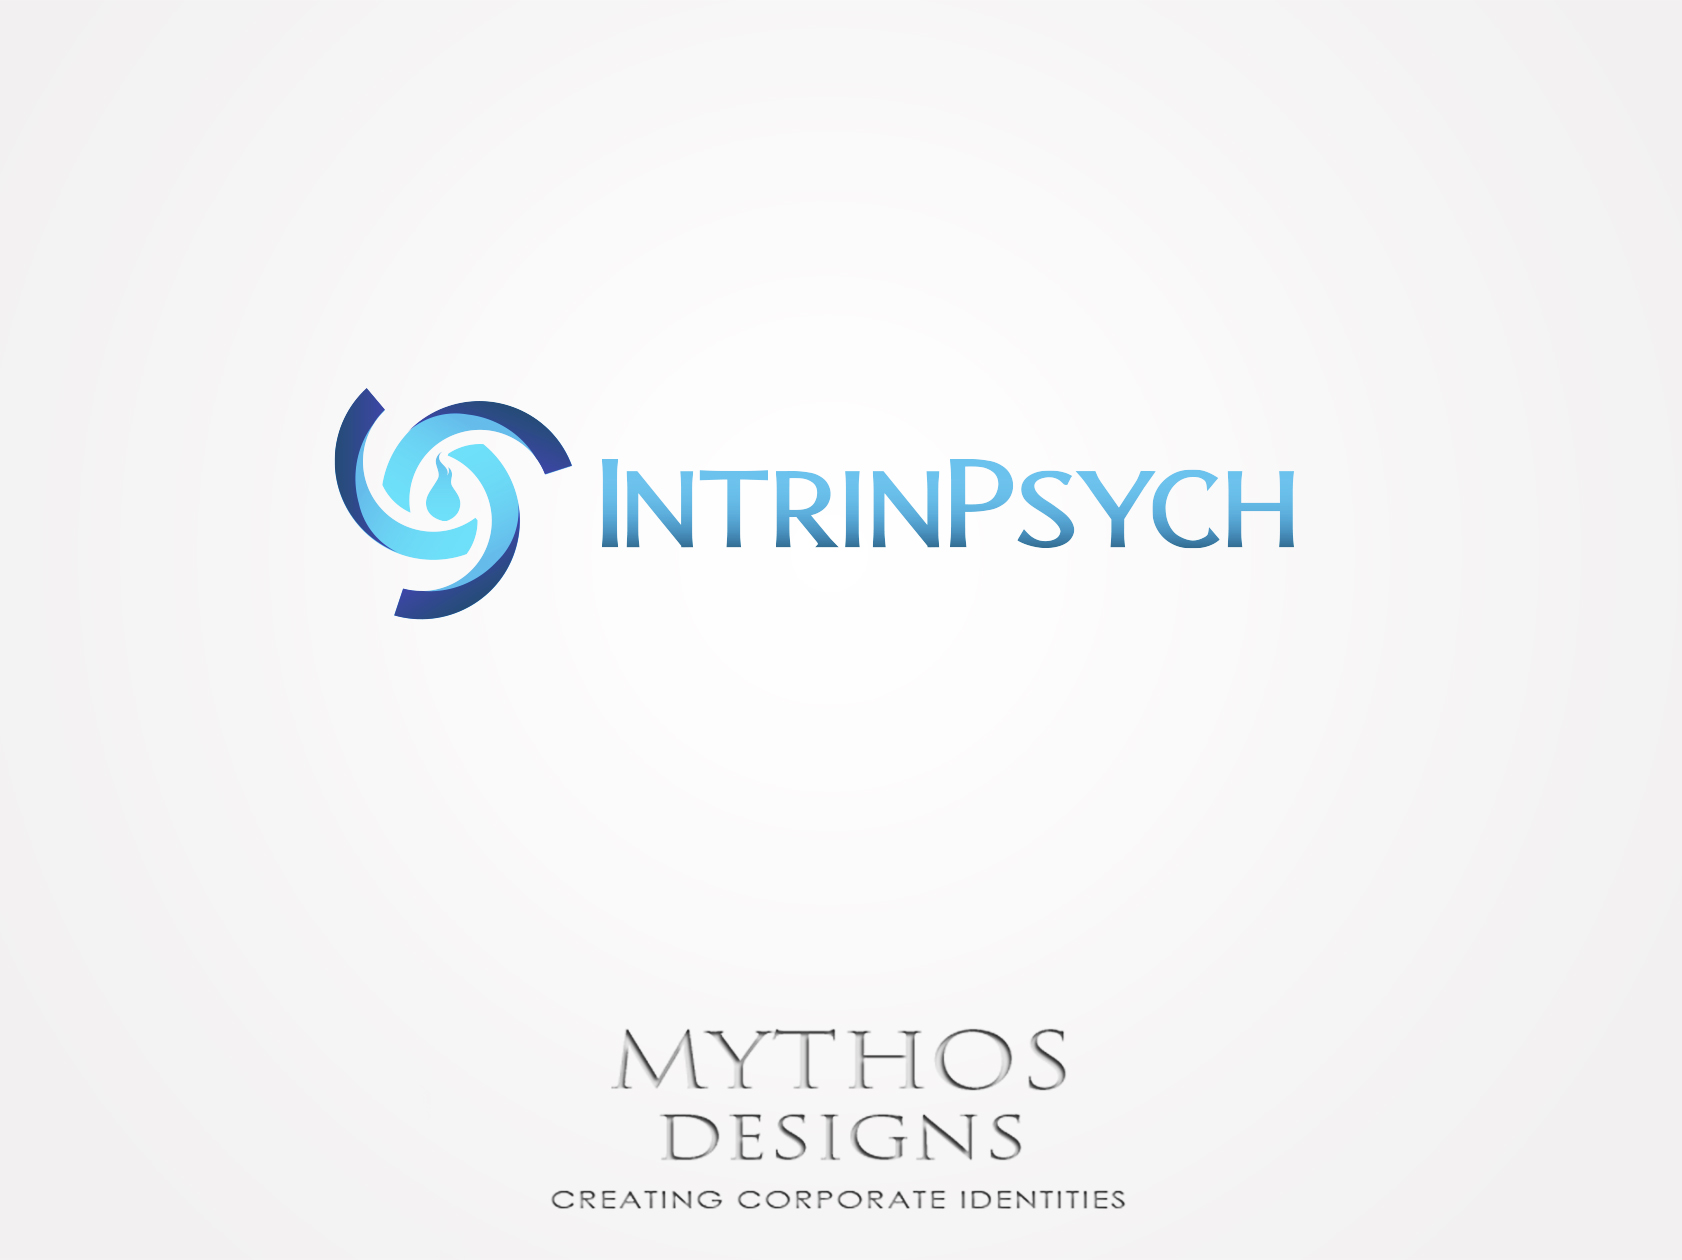 Logo Design by Mythos Designs - Entry No. 204 in the Logo Design Contest New Logo Design for IntrinPsych.